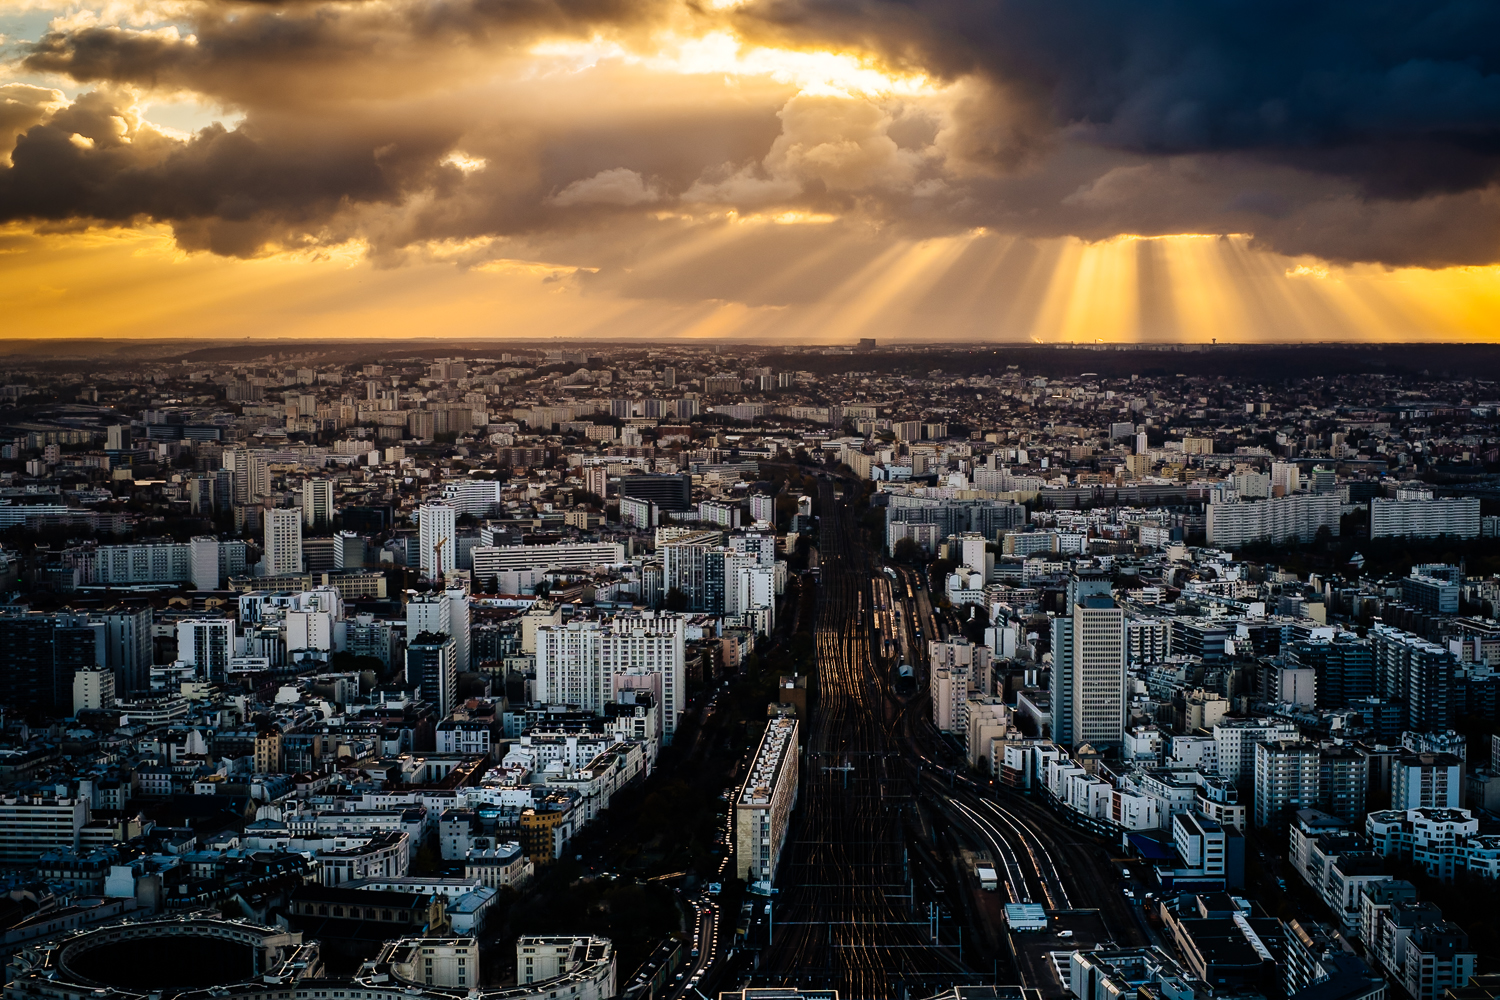 View from the terrace at Montparnasse Tower